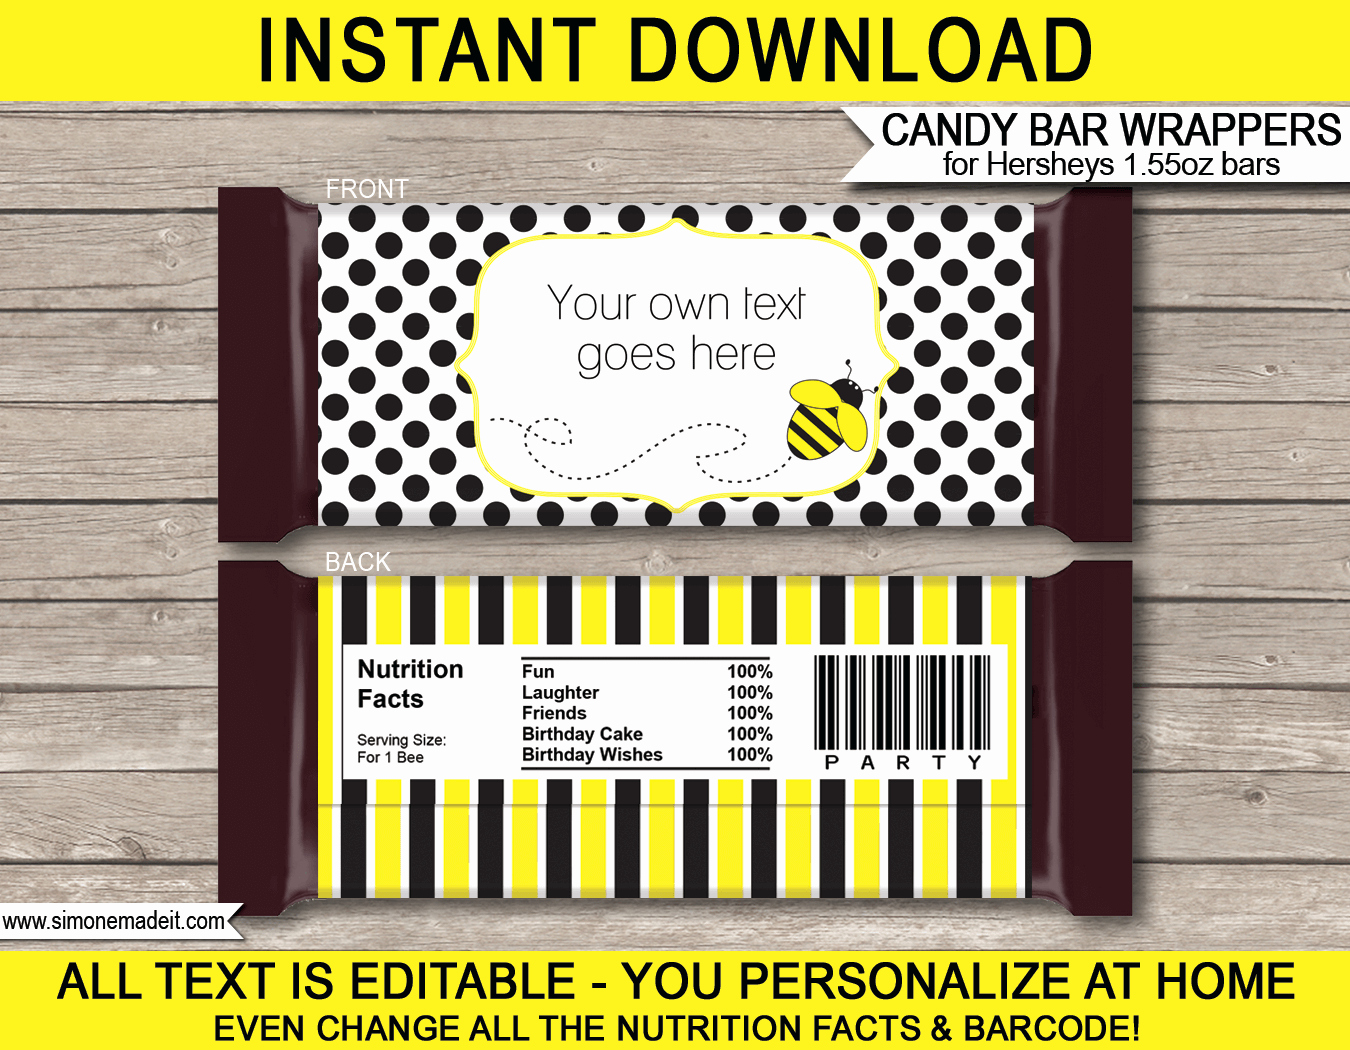 Custom Candy Wrapper Template New Bee Hershey Candy Bar Wrappers